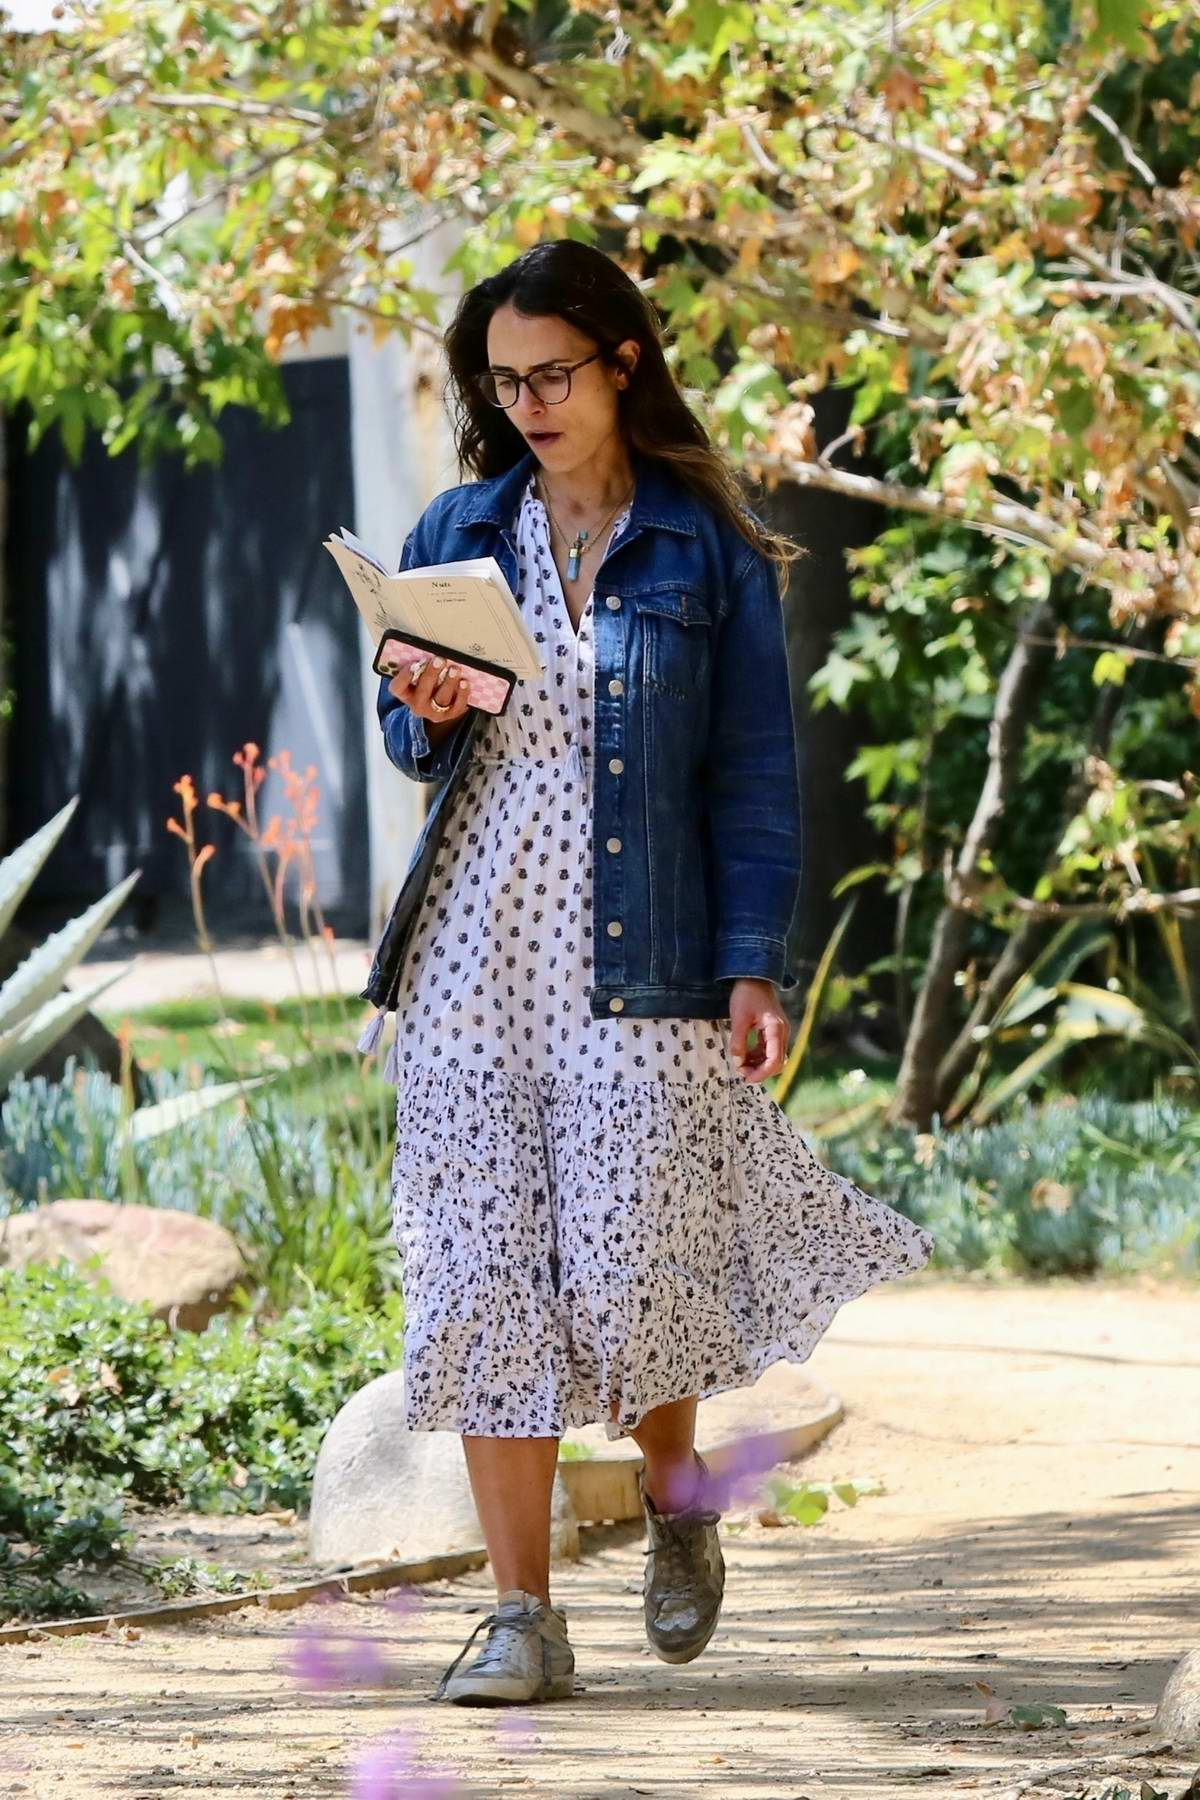 Jordana Brewster enjoys an afternoon stroll while reading a book in Brentwood, California